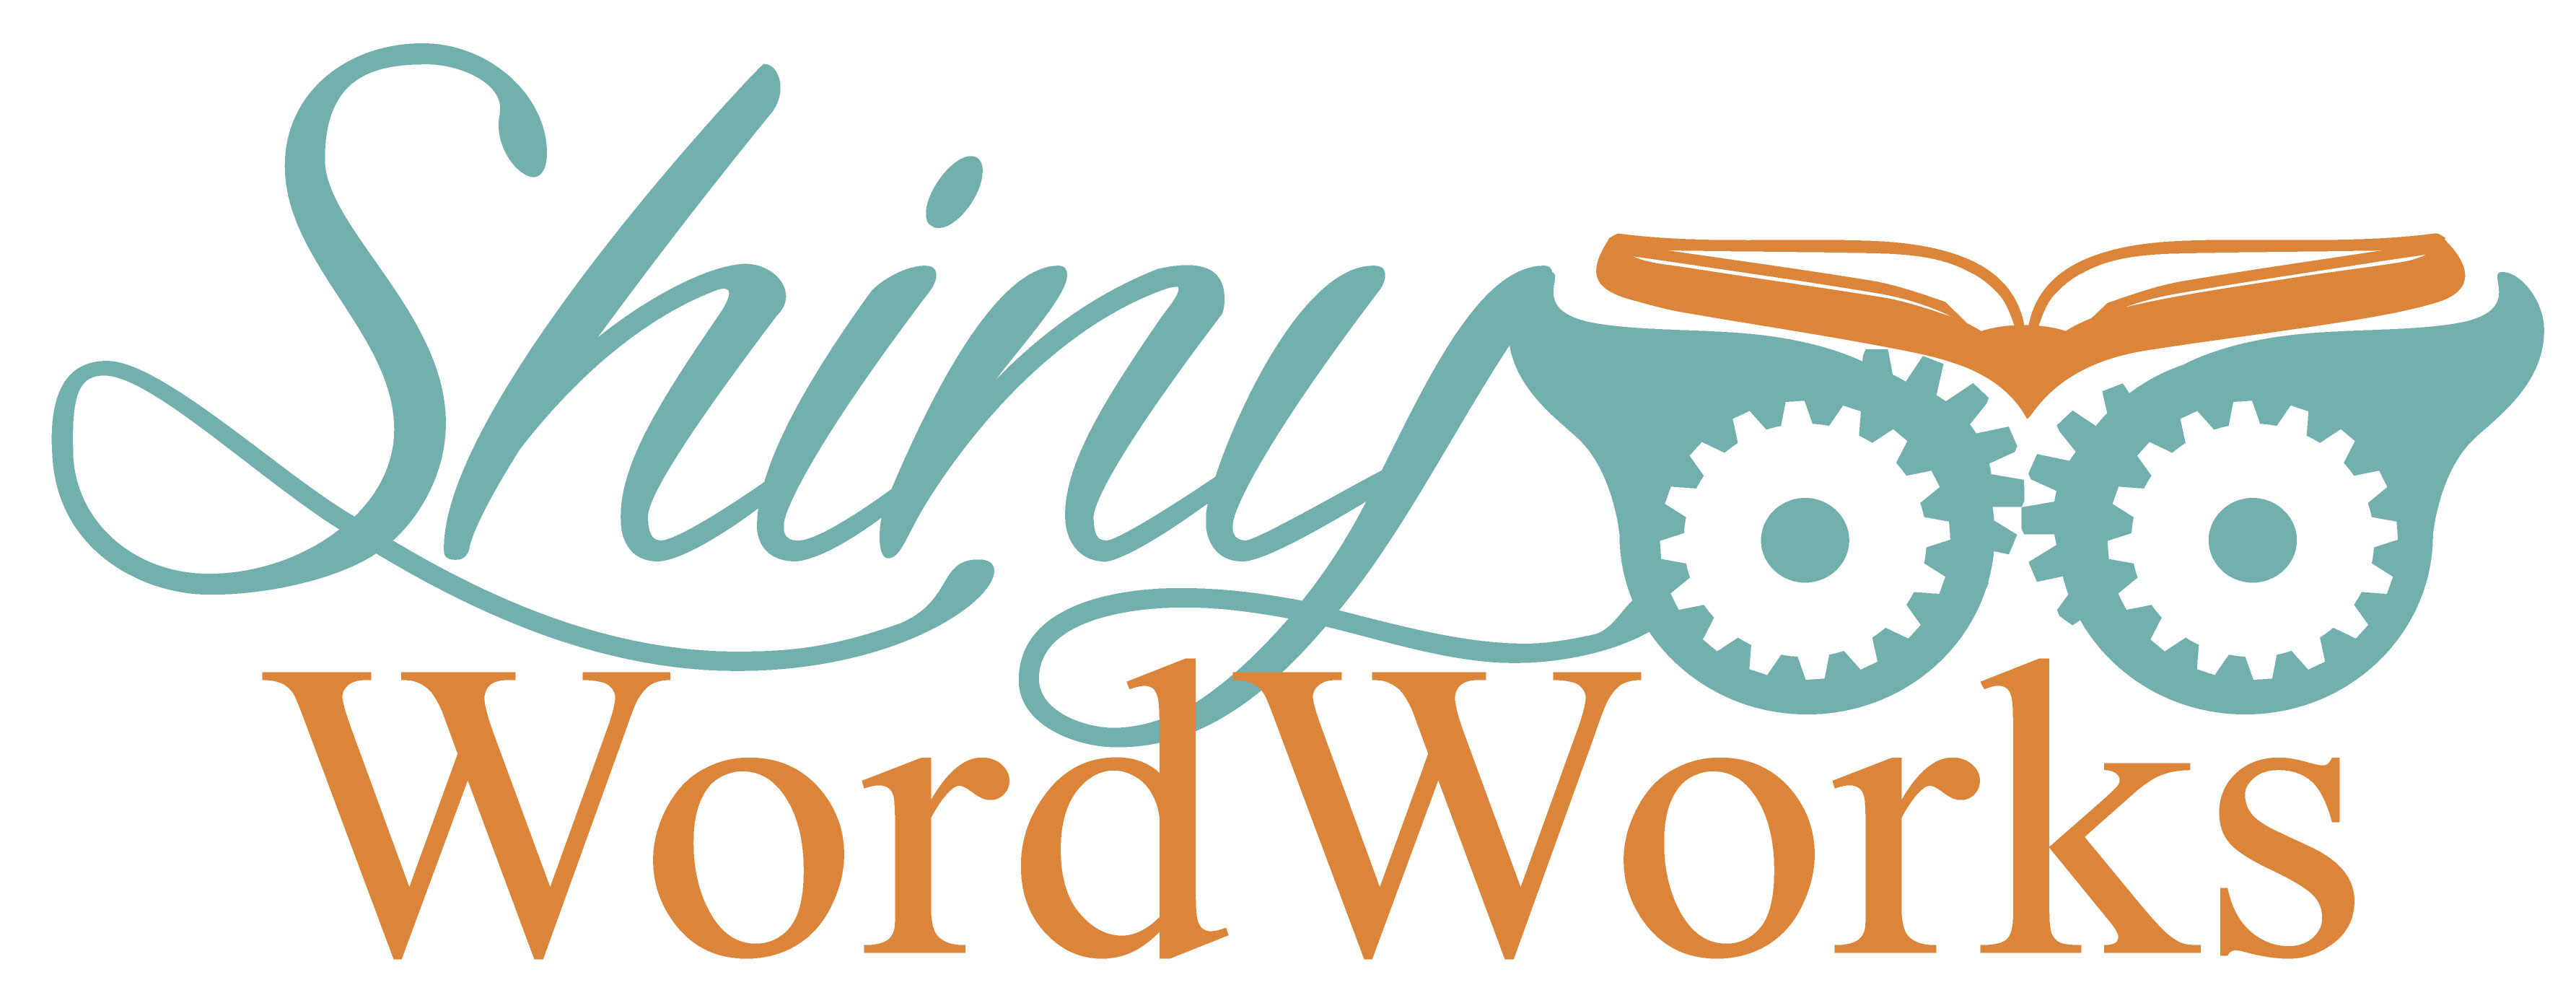 ShinyWordworks-logo